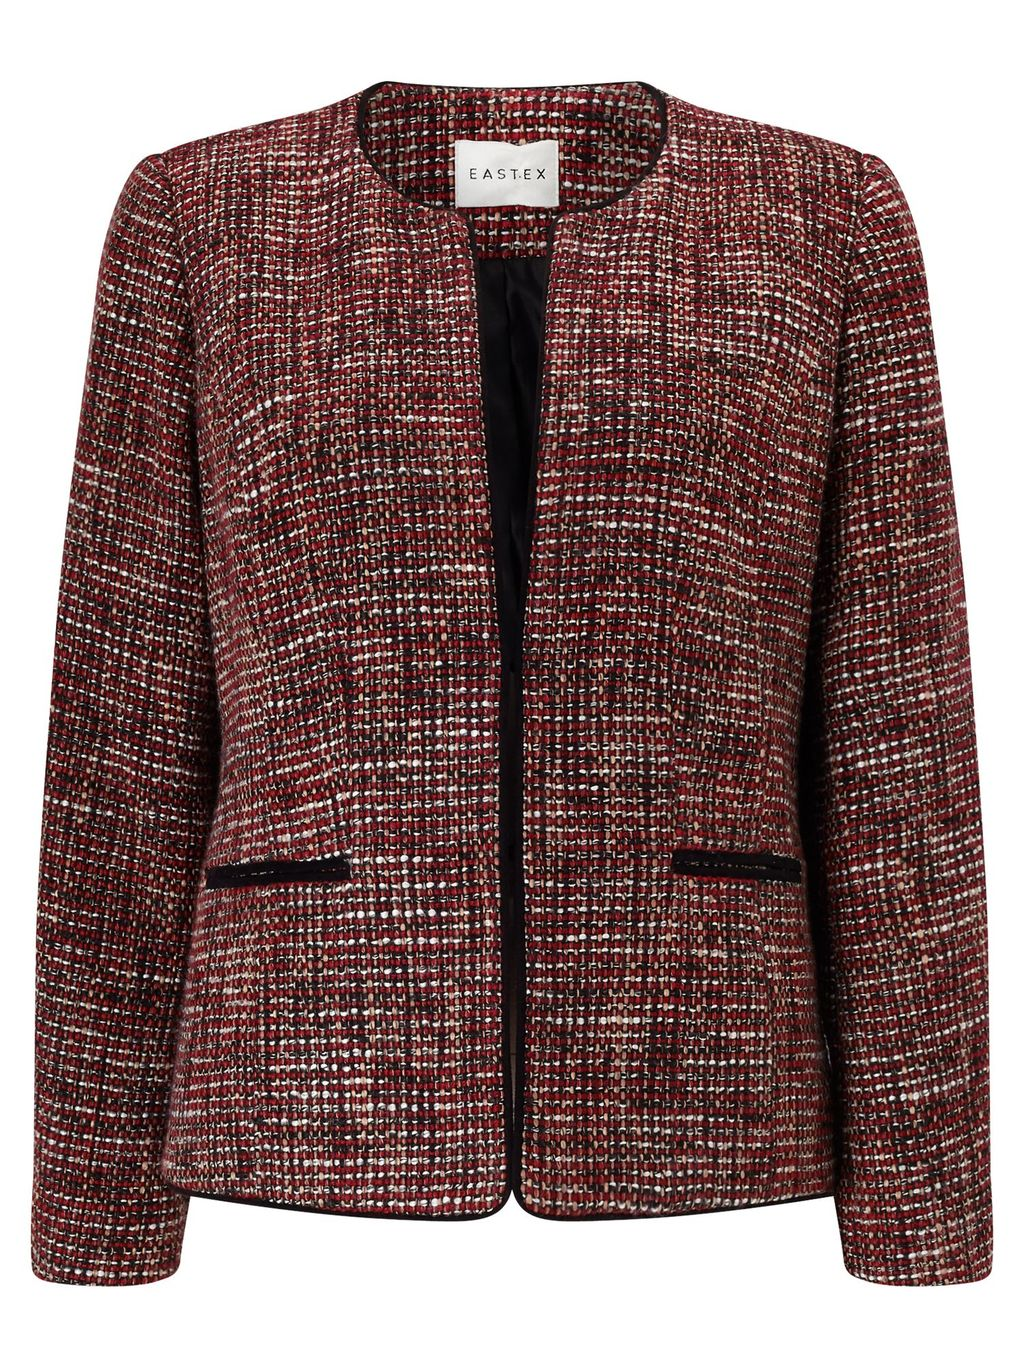 Tweed Jacket, Multi Coloured - collar: round collar/collarless; style: boxy; pattern: herringbone/tweed; secondary colour: white; predominant colour: burgundy; length: standard; fit: straight cut (boxy); fibres: wool - mix; occasions: occasion; sleeve length: long sleeve; sleeve style: standard; collar break: medium; pattern type: fabric; texture group: tweed - light/midweight; season: a/w 2016; wardrobe: event